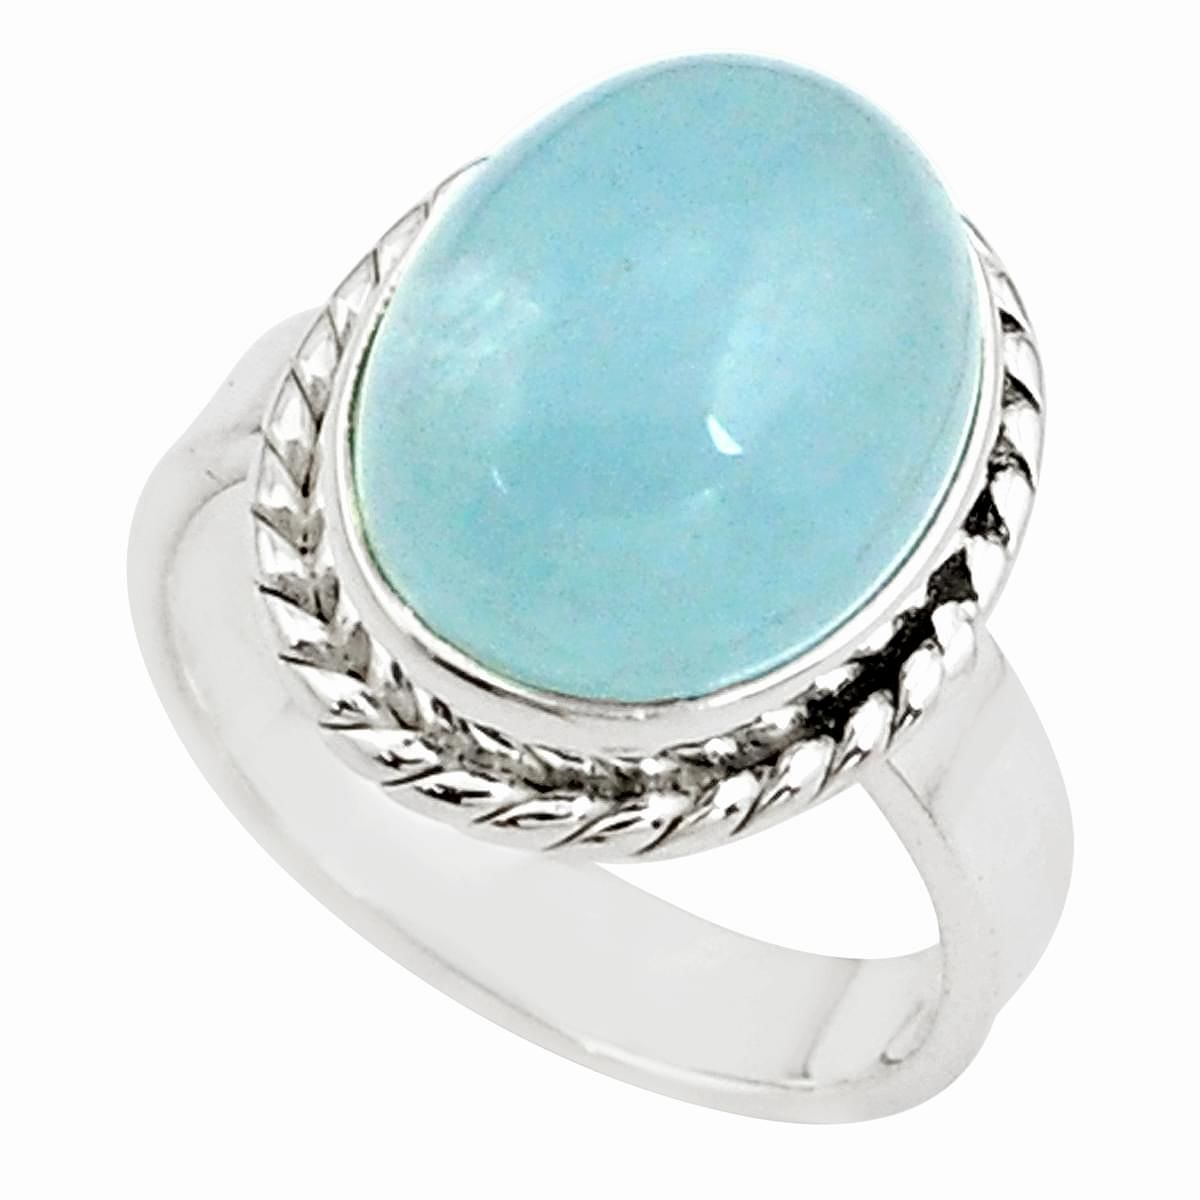 Saamarth Impex Blue Quartz Gemstone 925 Silver Plated Ring Size 8.25 PG-132716